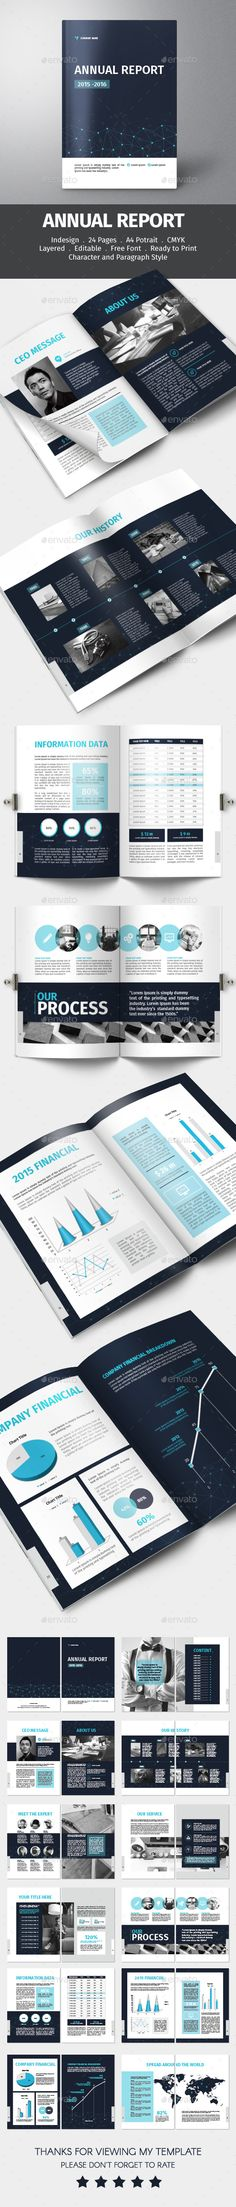 Annual Report Template INDD, Vector. Download here: http://graphicriver.net/item/annual-report/15470670?ref=ksioks